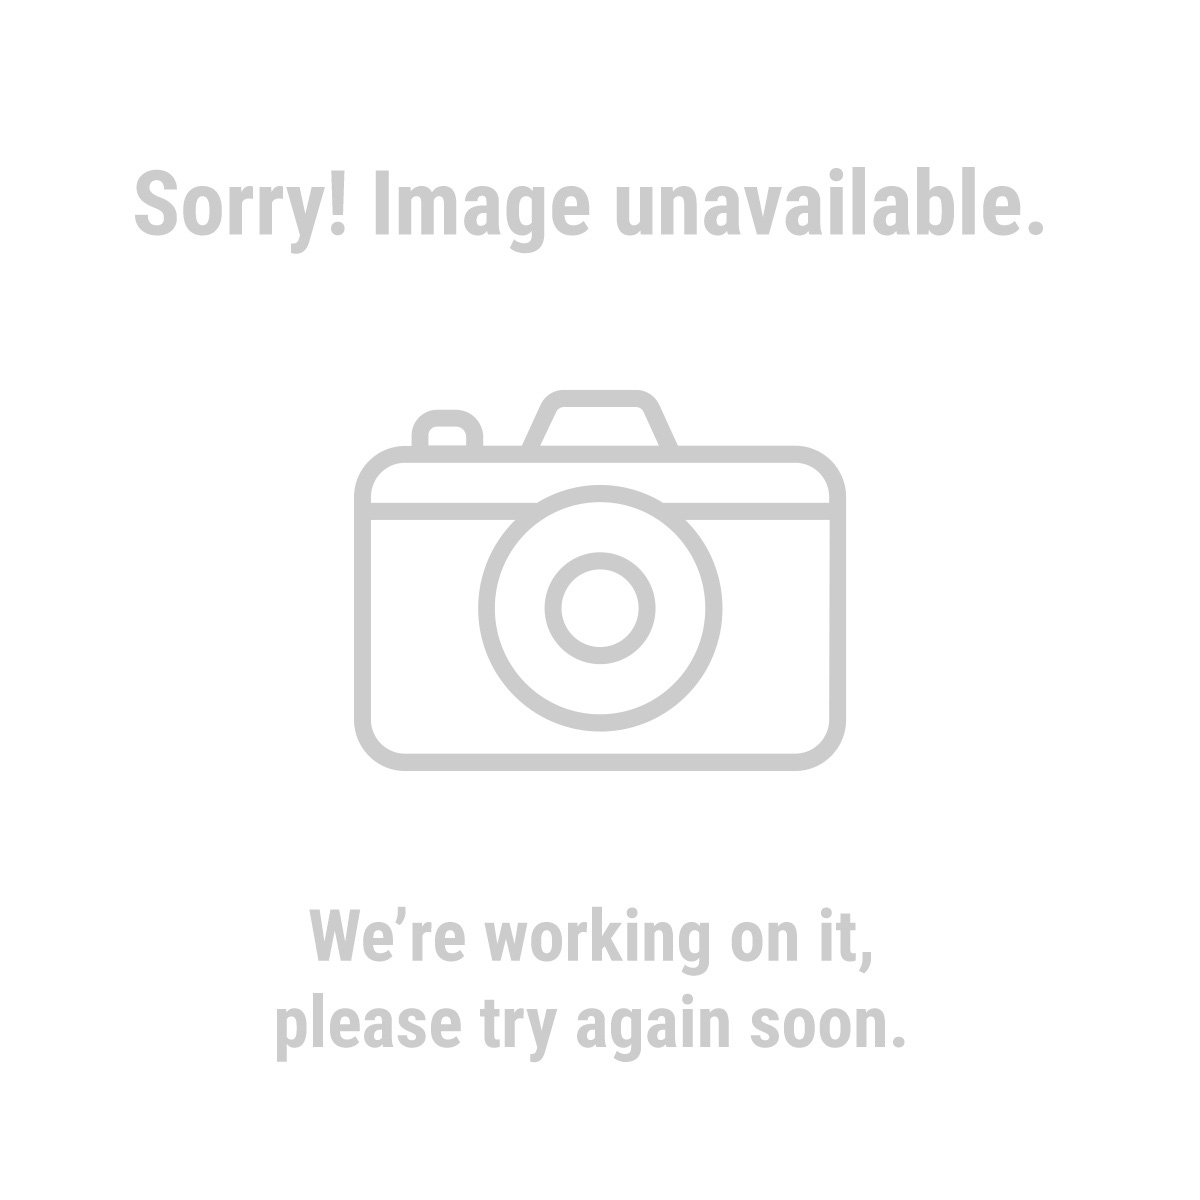 Central-Forge 61553 4 in. Swivel Vise with Anvil